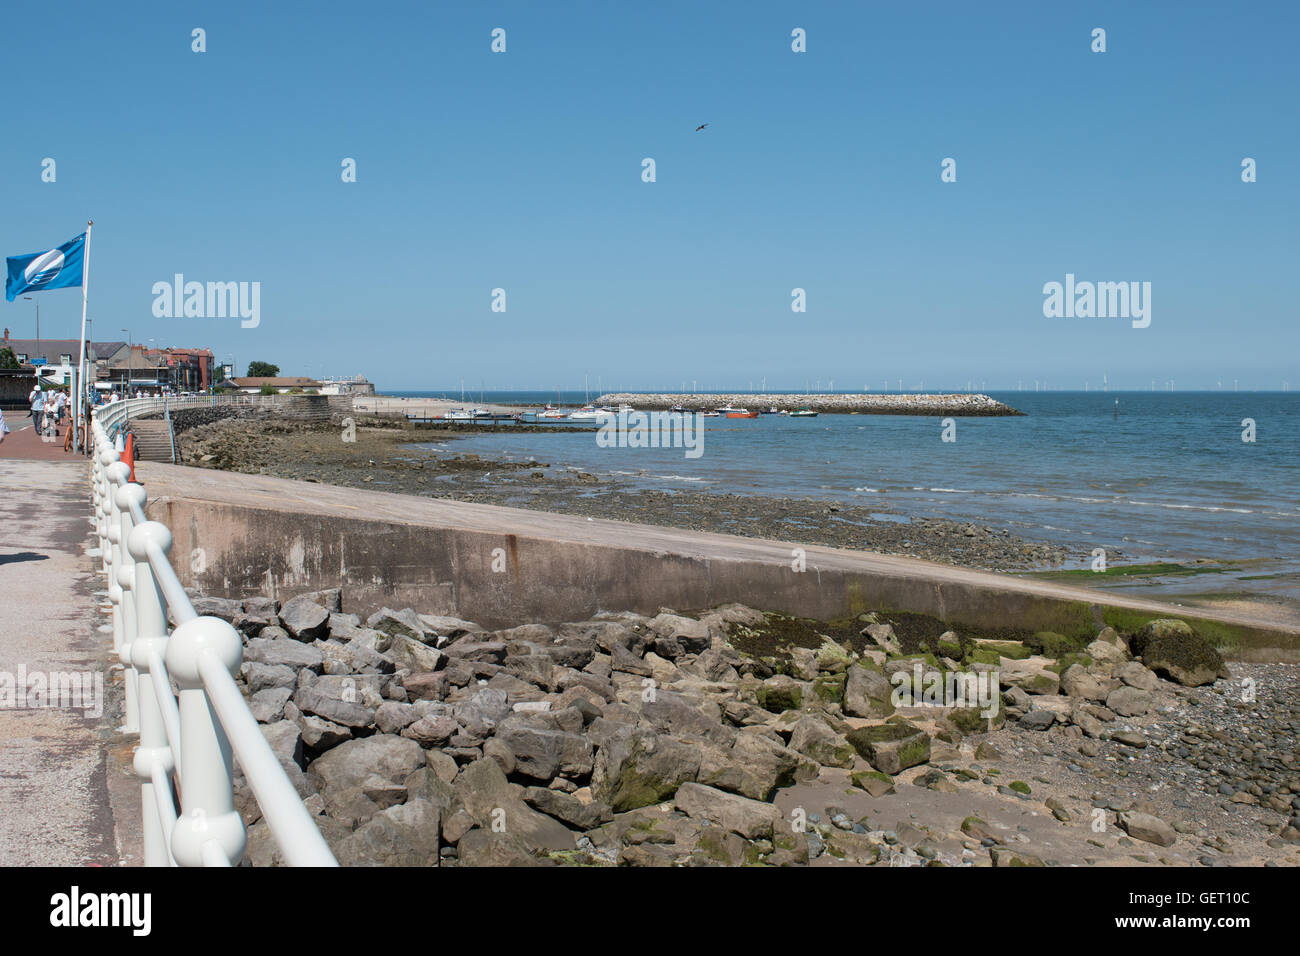 View towards breakwater at Rhos on Sea, Colwyn Bay North Wales Stock Photo